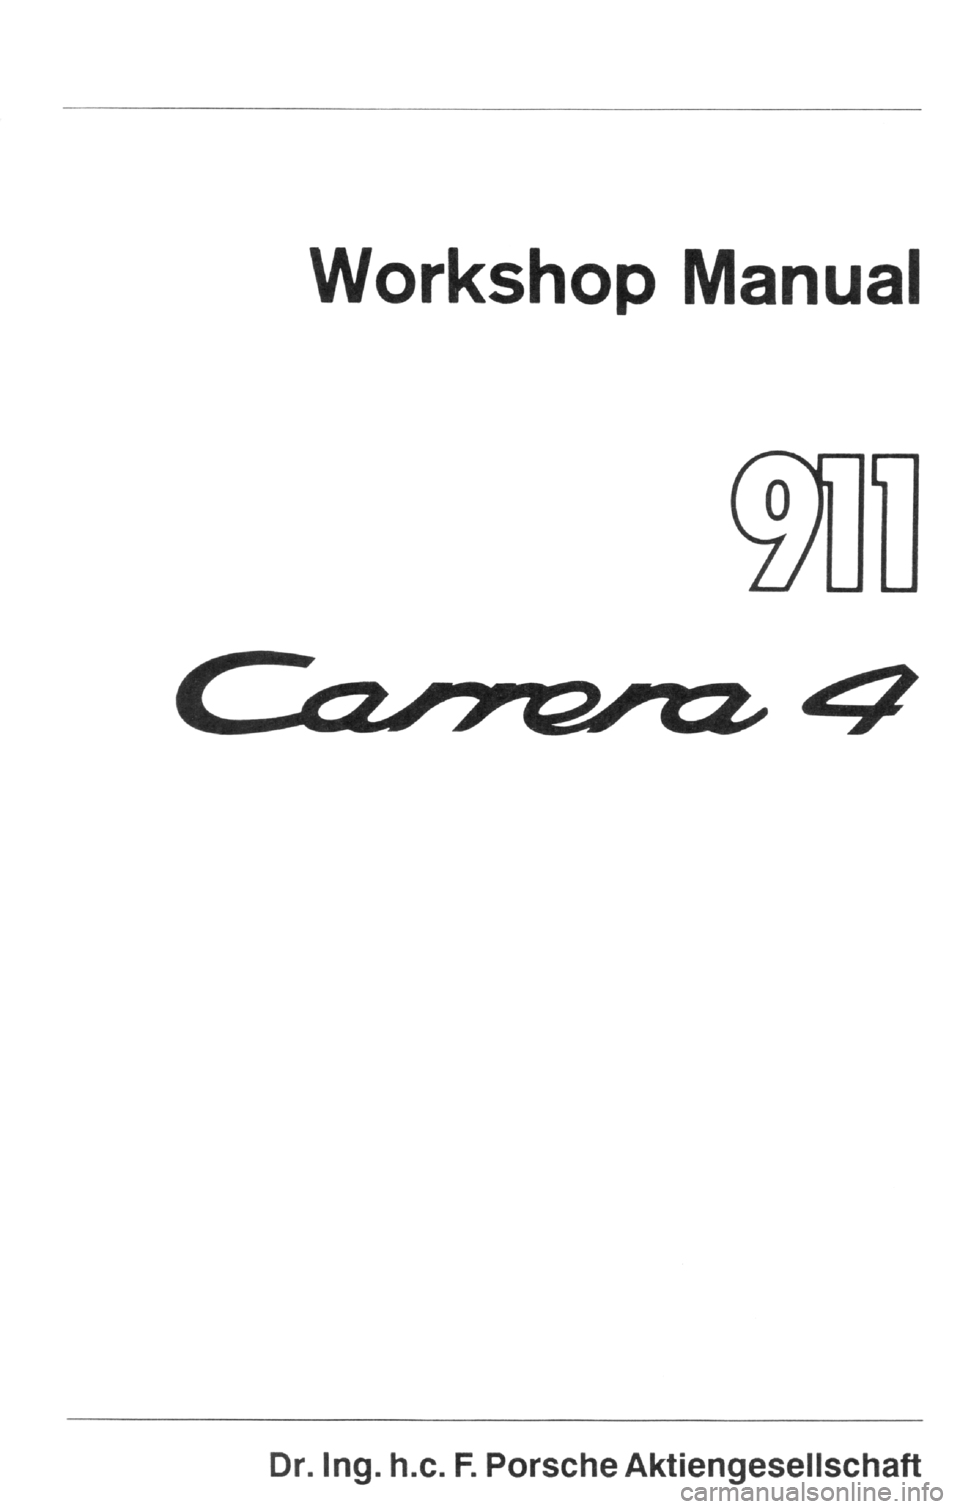 PORSCHE 964 1985 2.G Service Workshop Manual 3